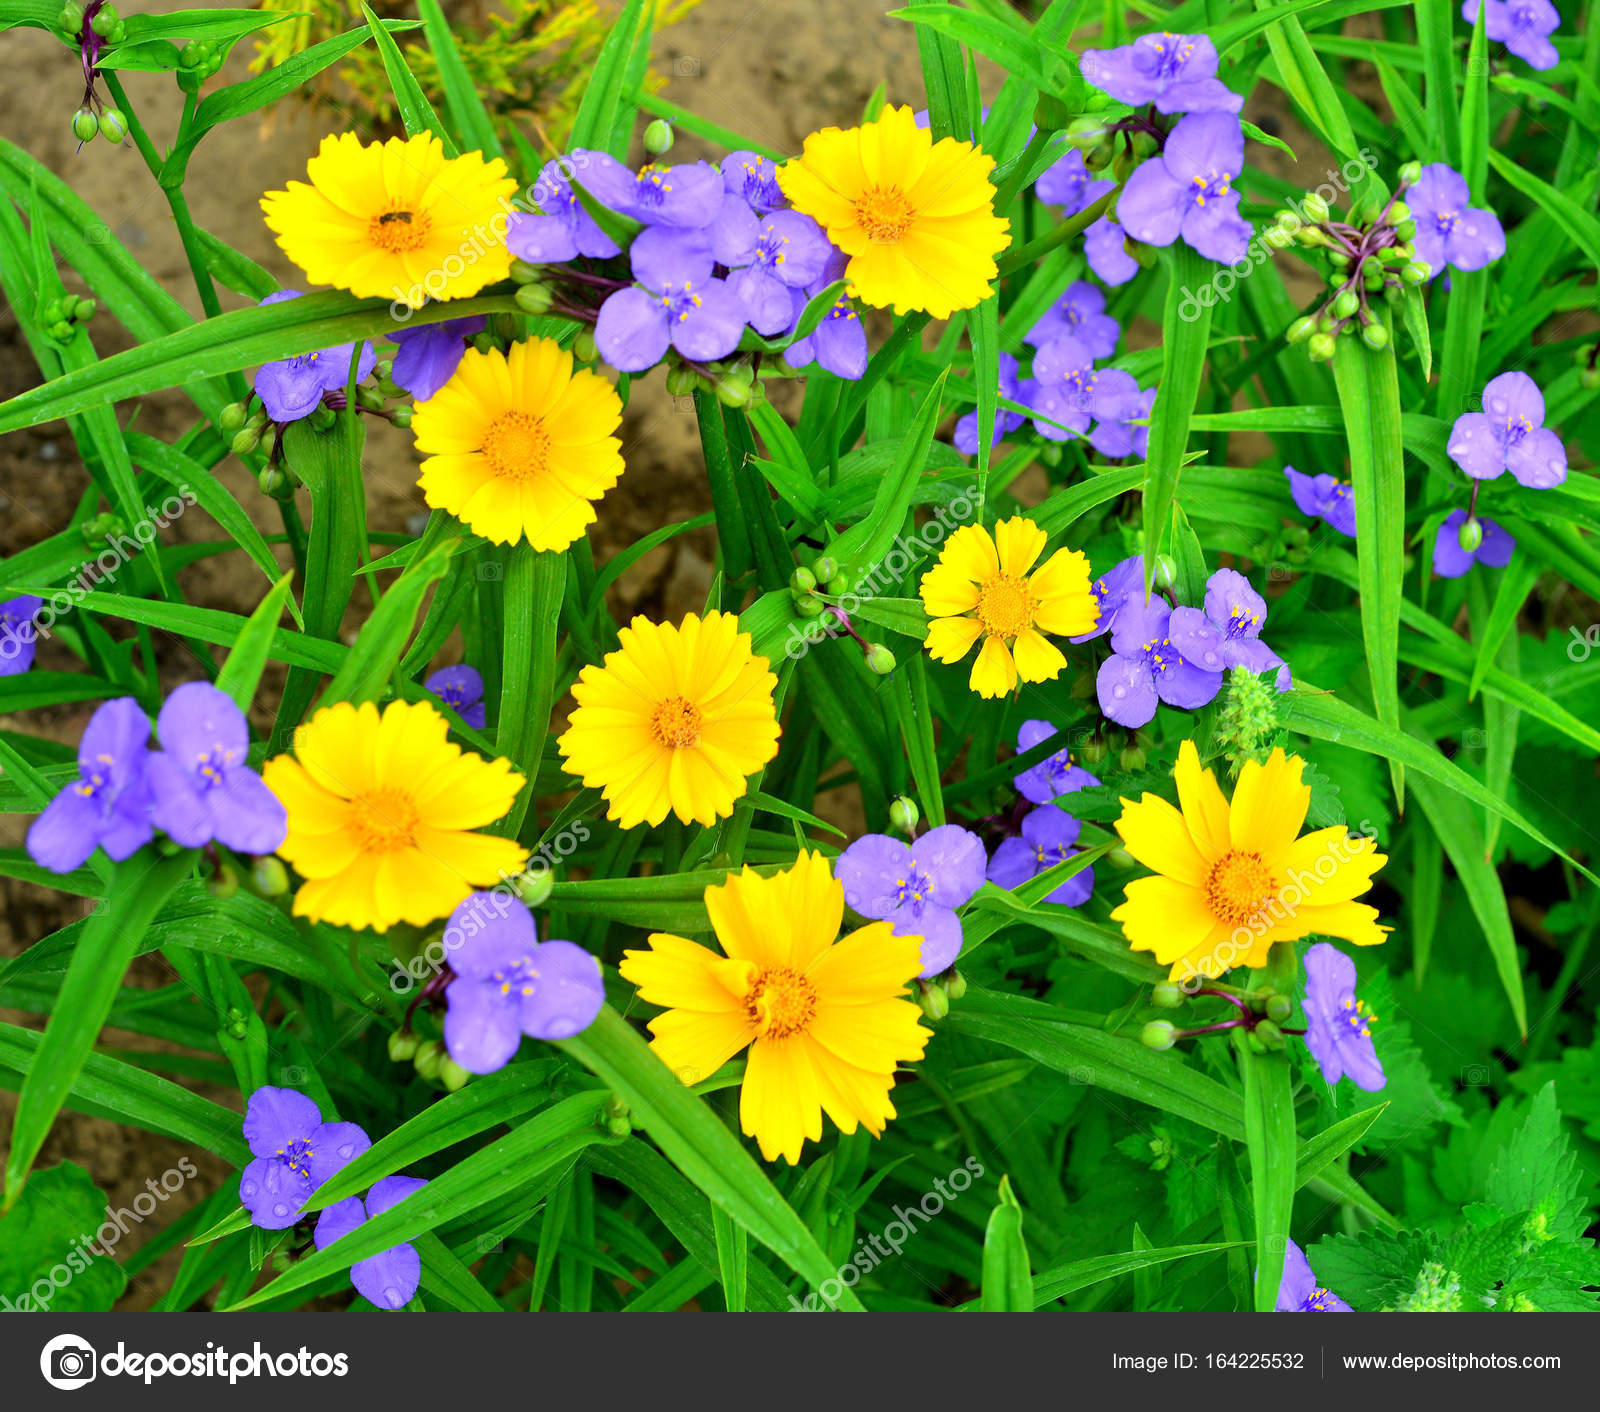 Flowers Of Yellow Daisies And Blue Tradescantia In The Garden On